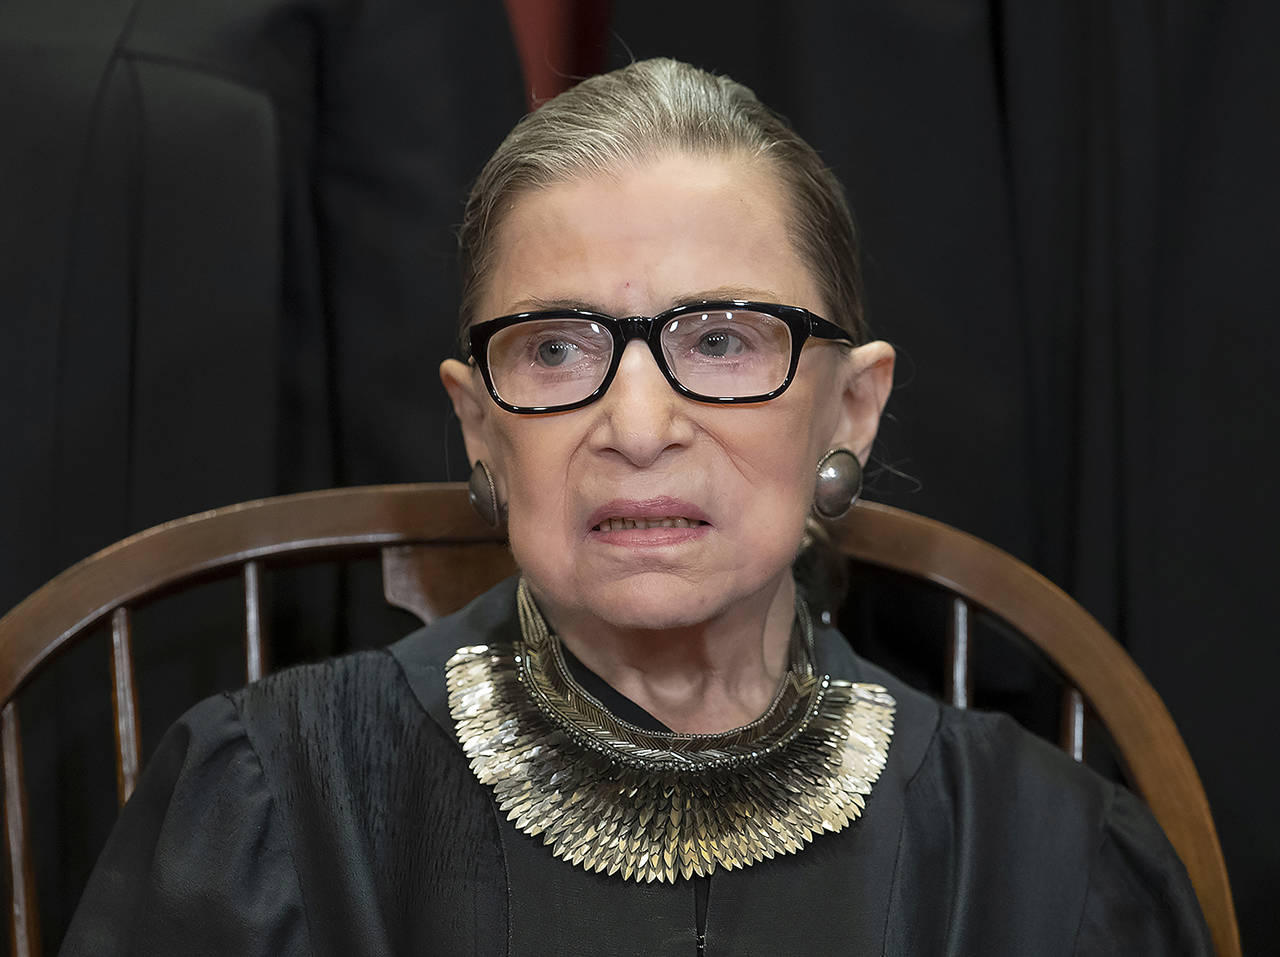 In this November 2018 photo, Associate Justice Ruth Bader Ginsburg sits with fellow Supreme Court justices for a group portrait at the Supreme Court Building in Washington. (AP Photo/J. Scott Applewhite, File)